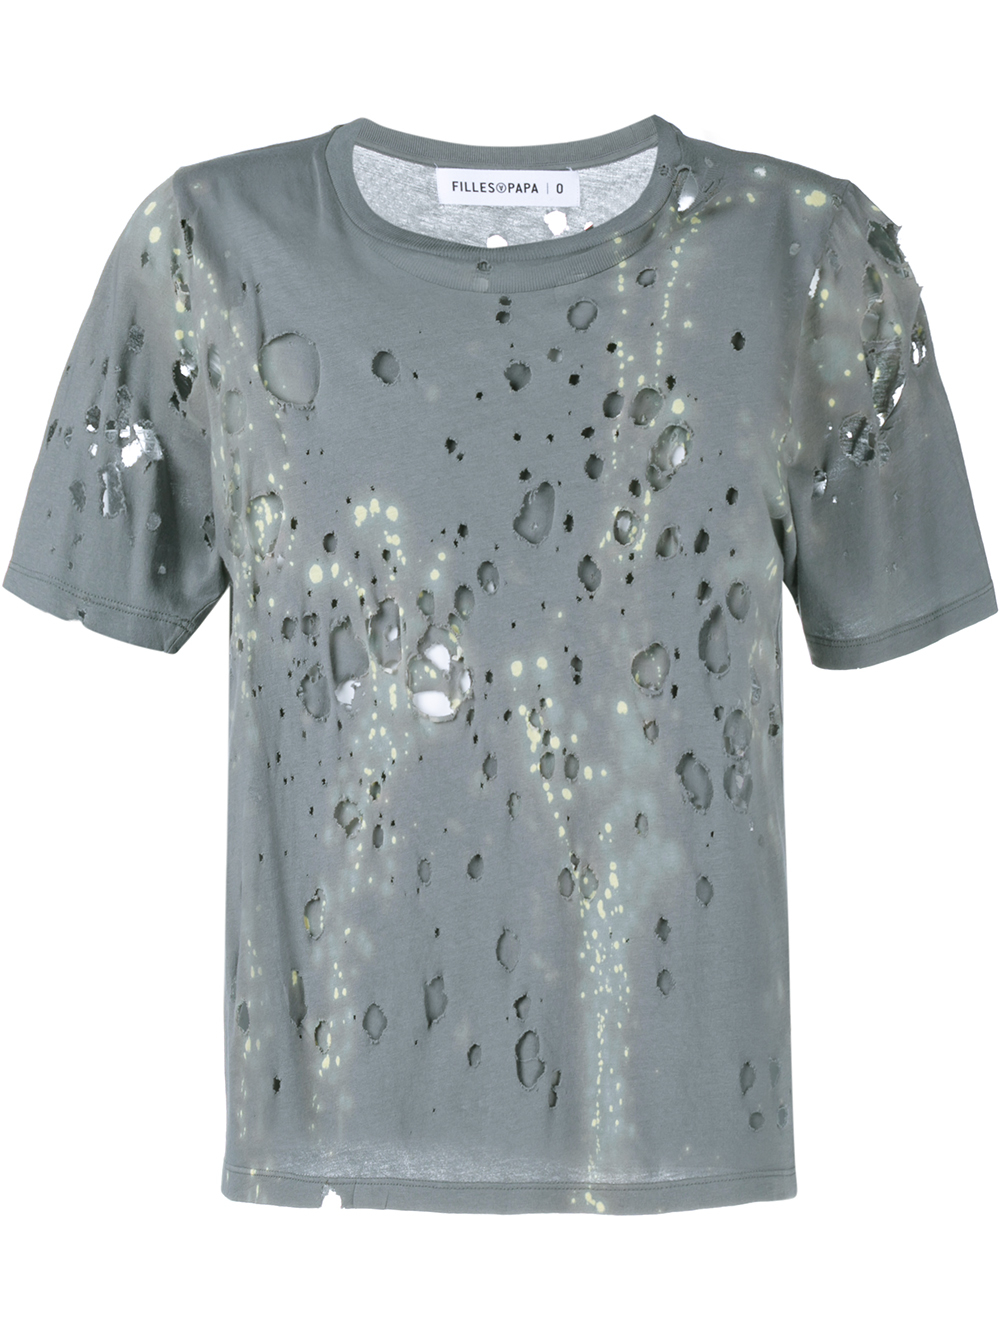 Filles a papa twilight distressed t shirt in gray lyst for How to make a distressed shirt